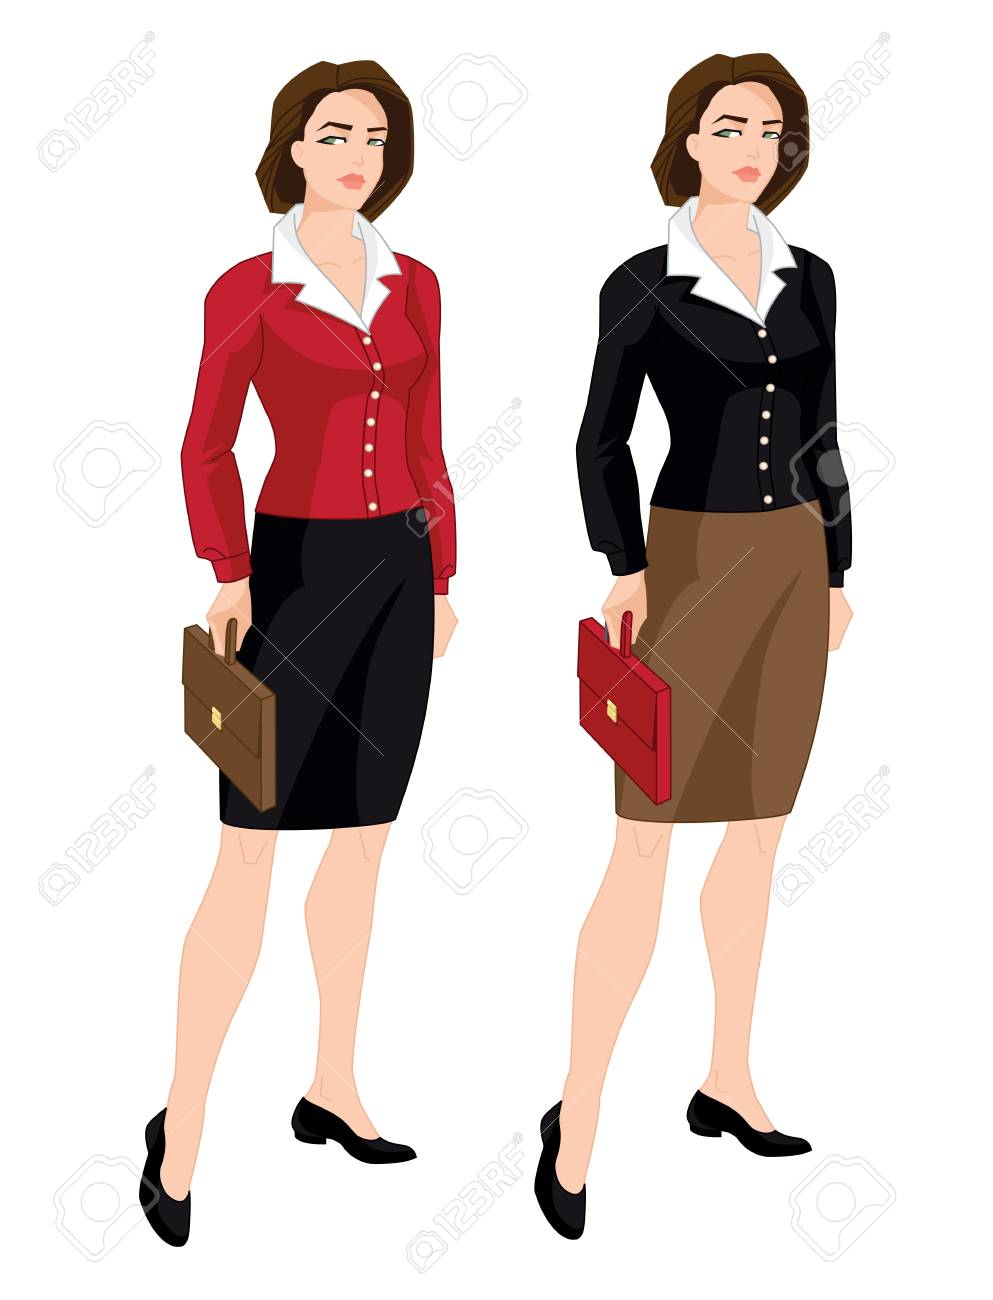 Vector Illustration Of Corporate Dress Code Business Women Or